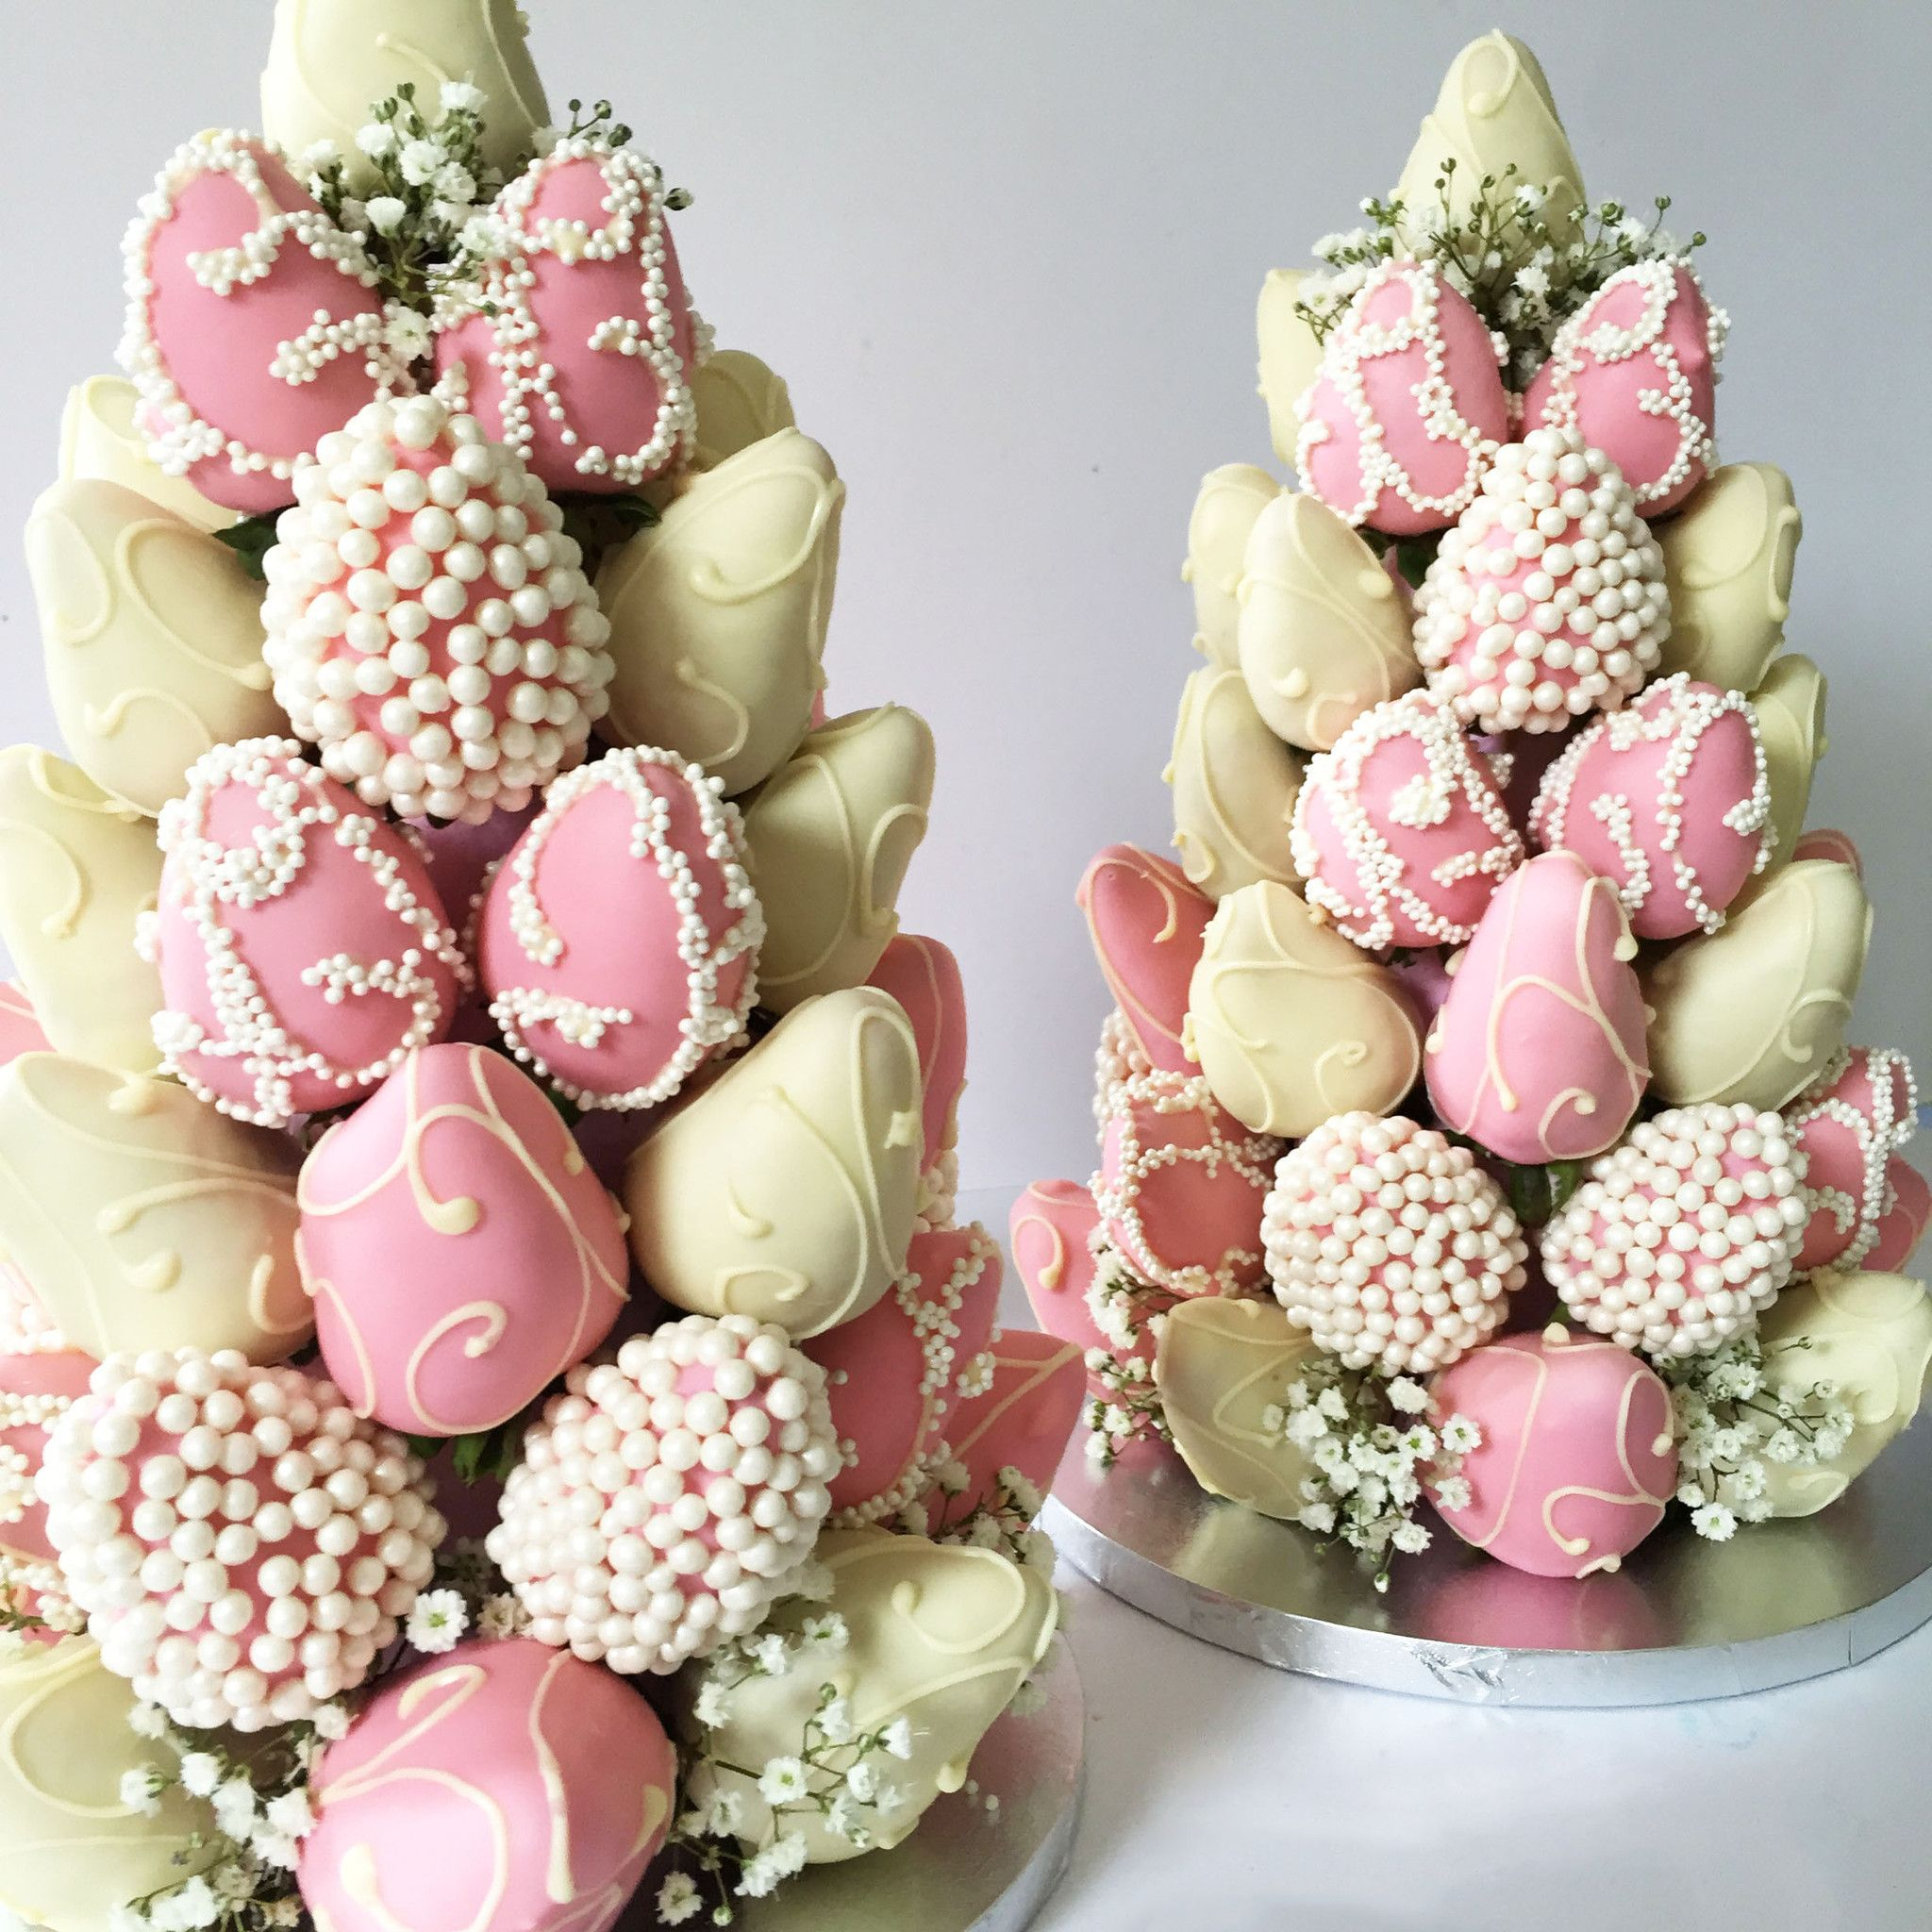 Customised Chocolate Dipped Strawberry Tower Large Melbourne Delivery 328 80 140 35